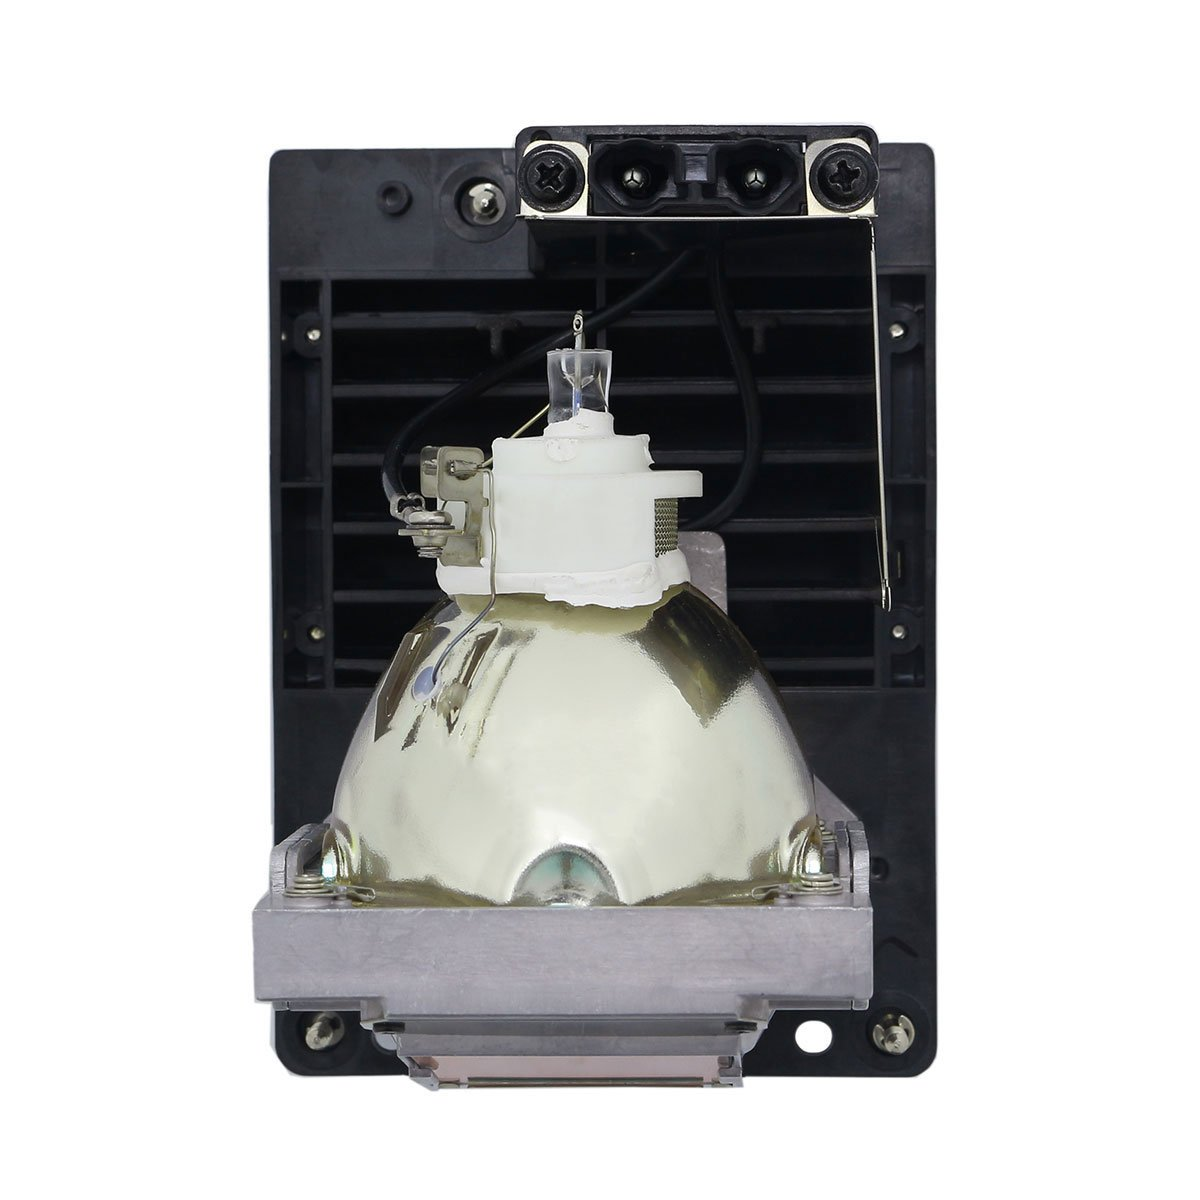 XpertMall Replacement Lamp with Housing for NEC MT1056 with Ushio Bulb Inside